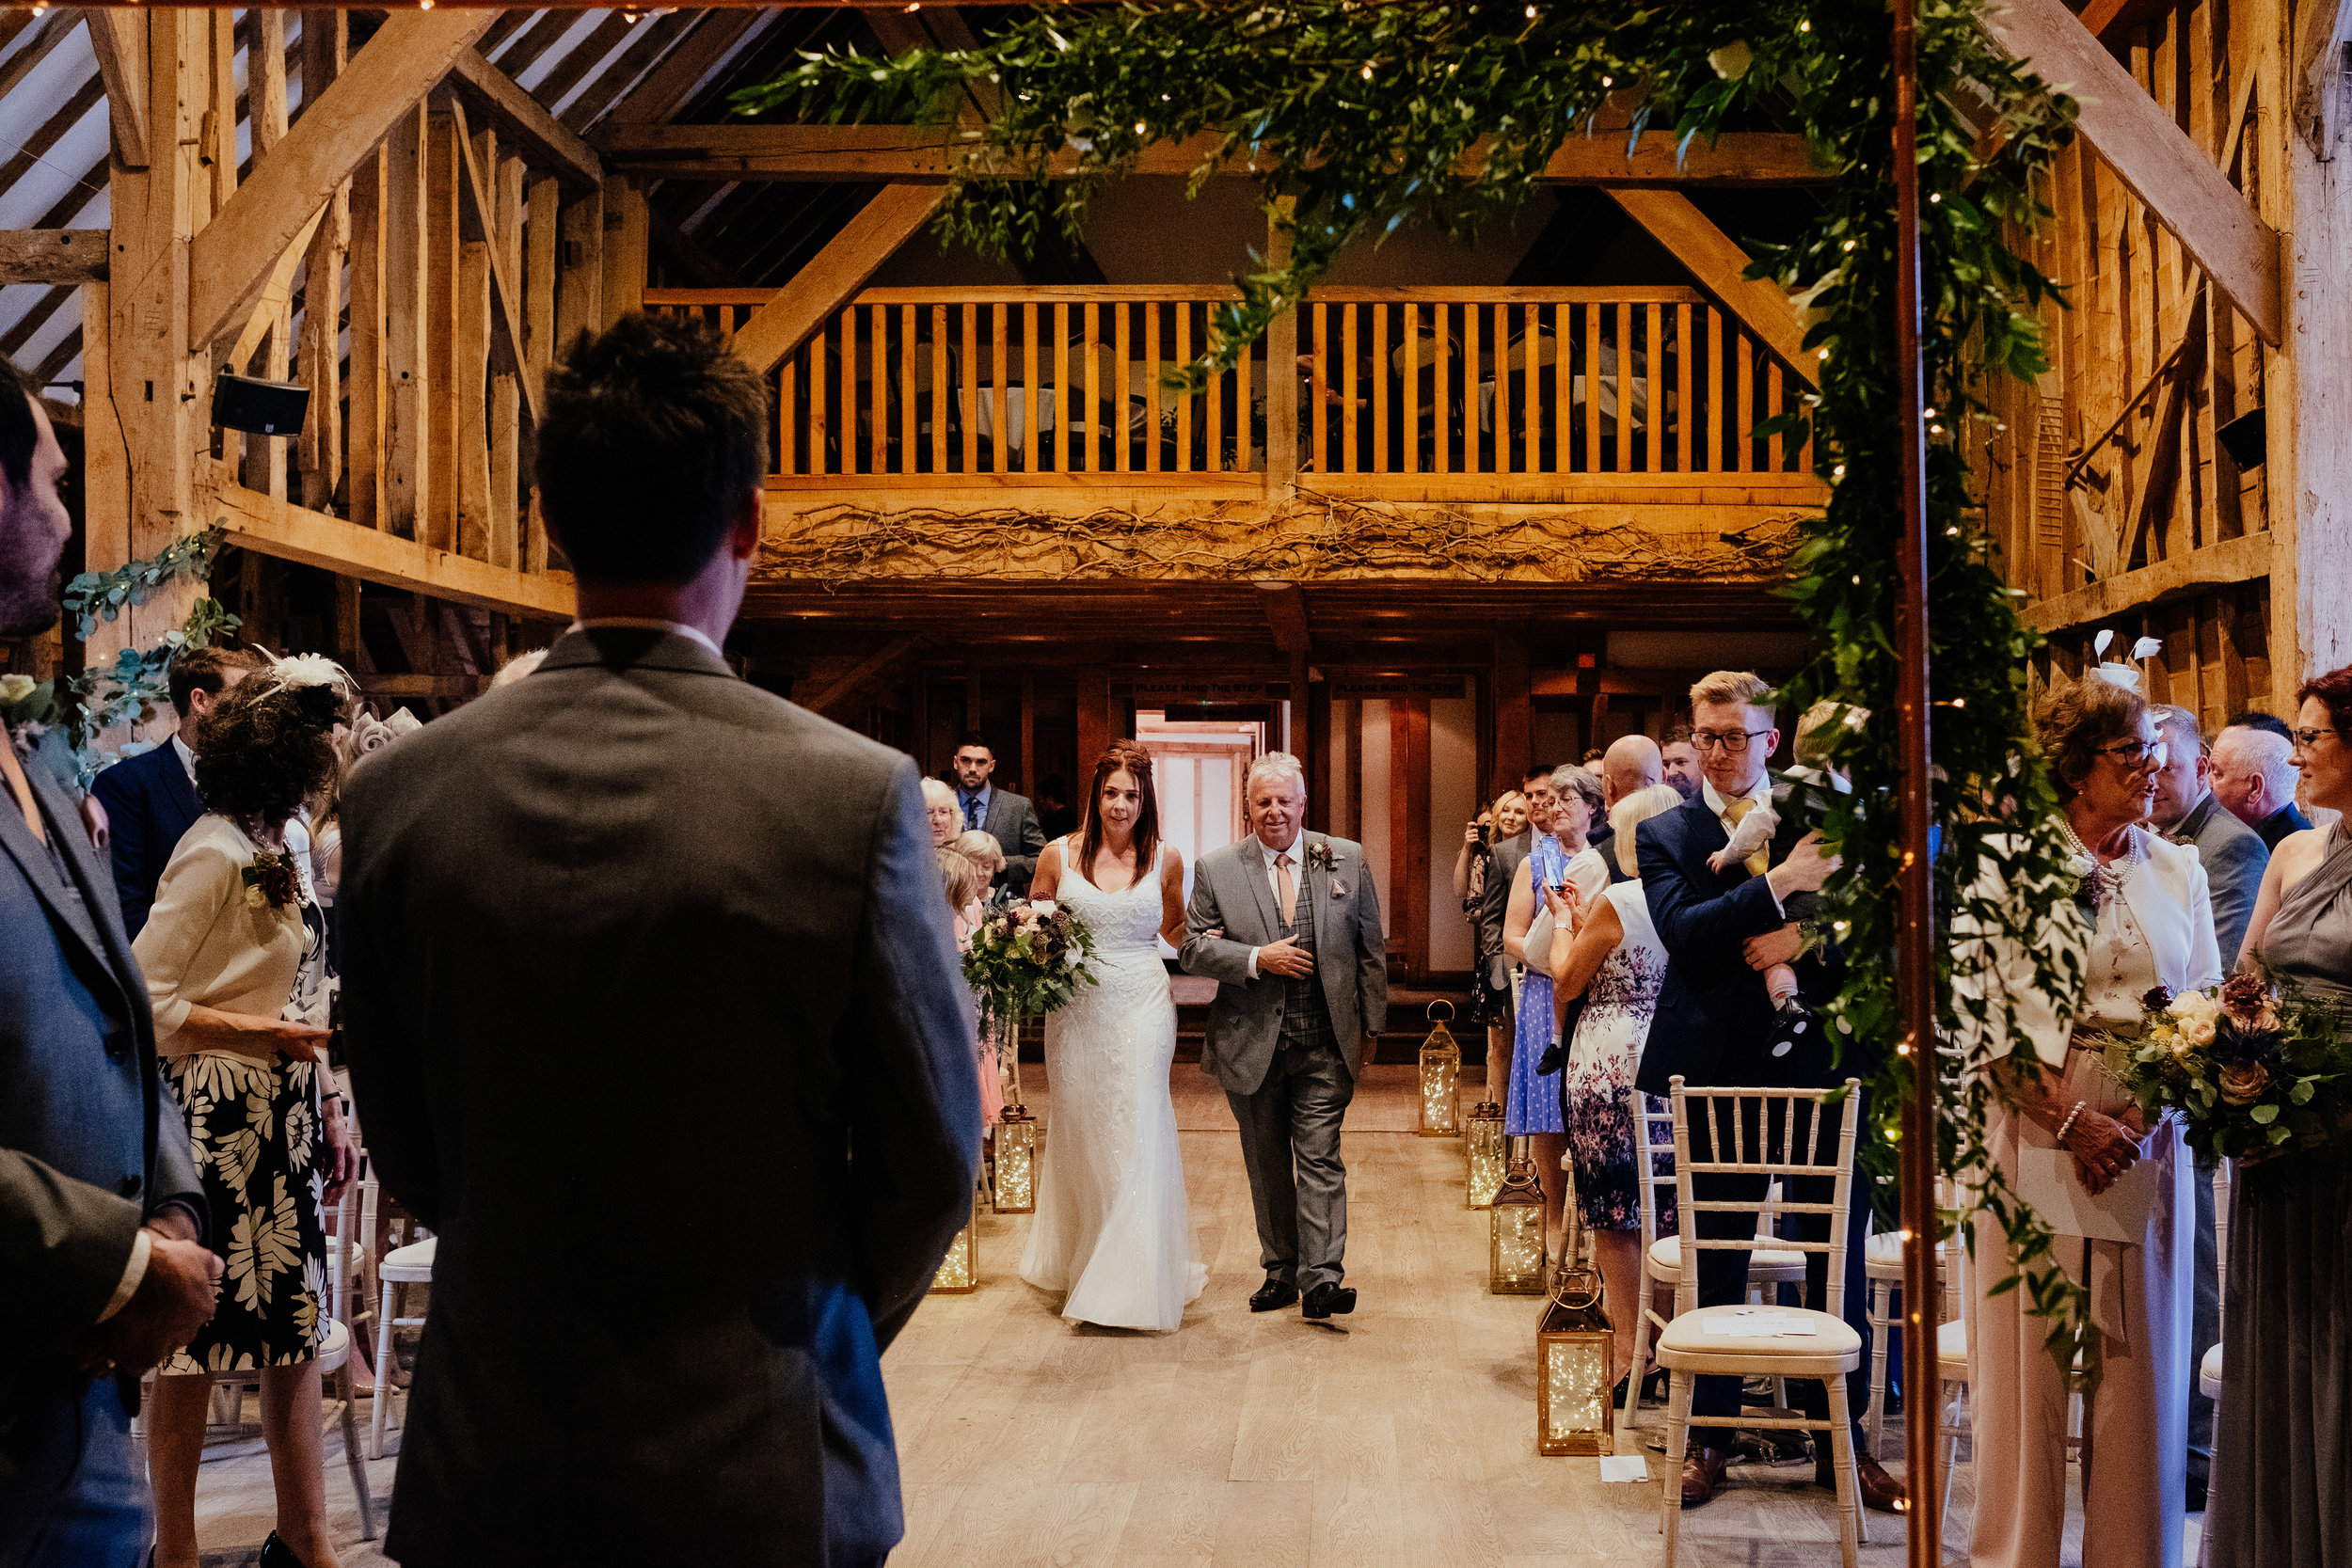 Bride and her dad walk down the aisle at Tewin Bury Farm wedding